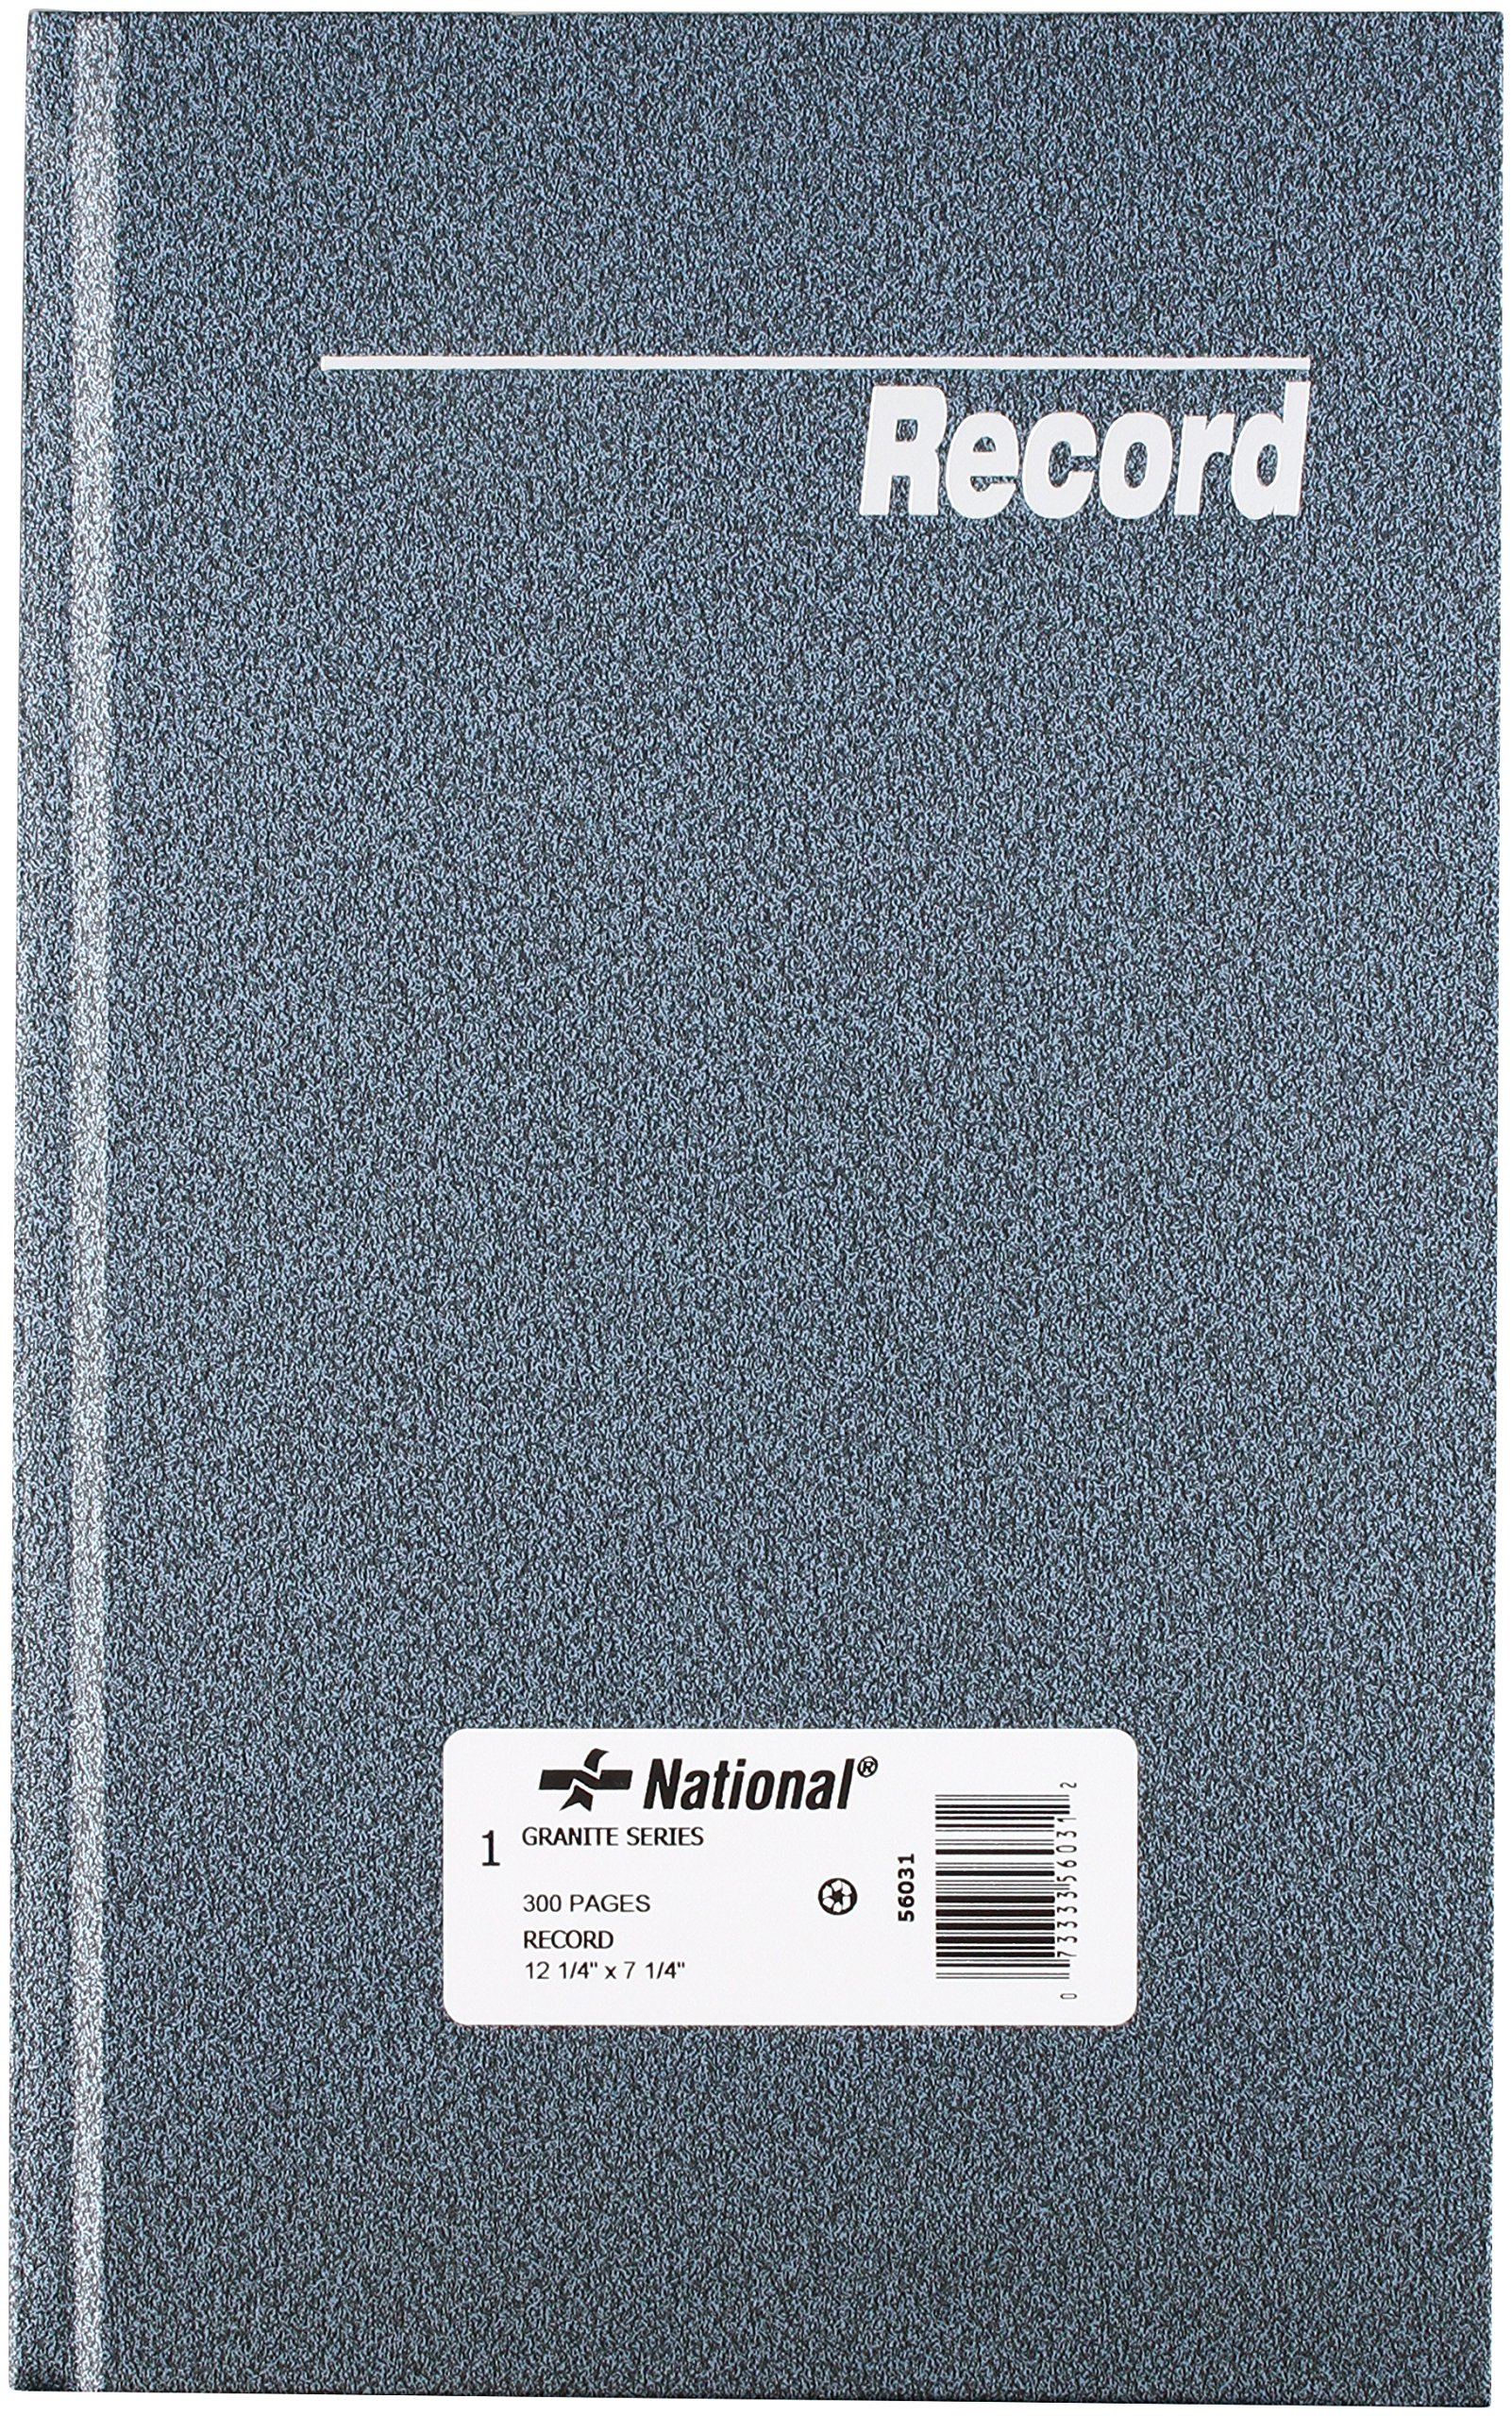 NATIONAL Granite Series Record Book, Patina Blue, 12.25 x 7.25'', 300 Pages (56031)